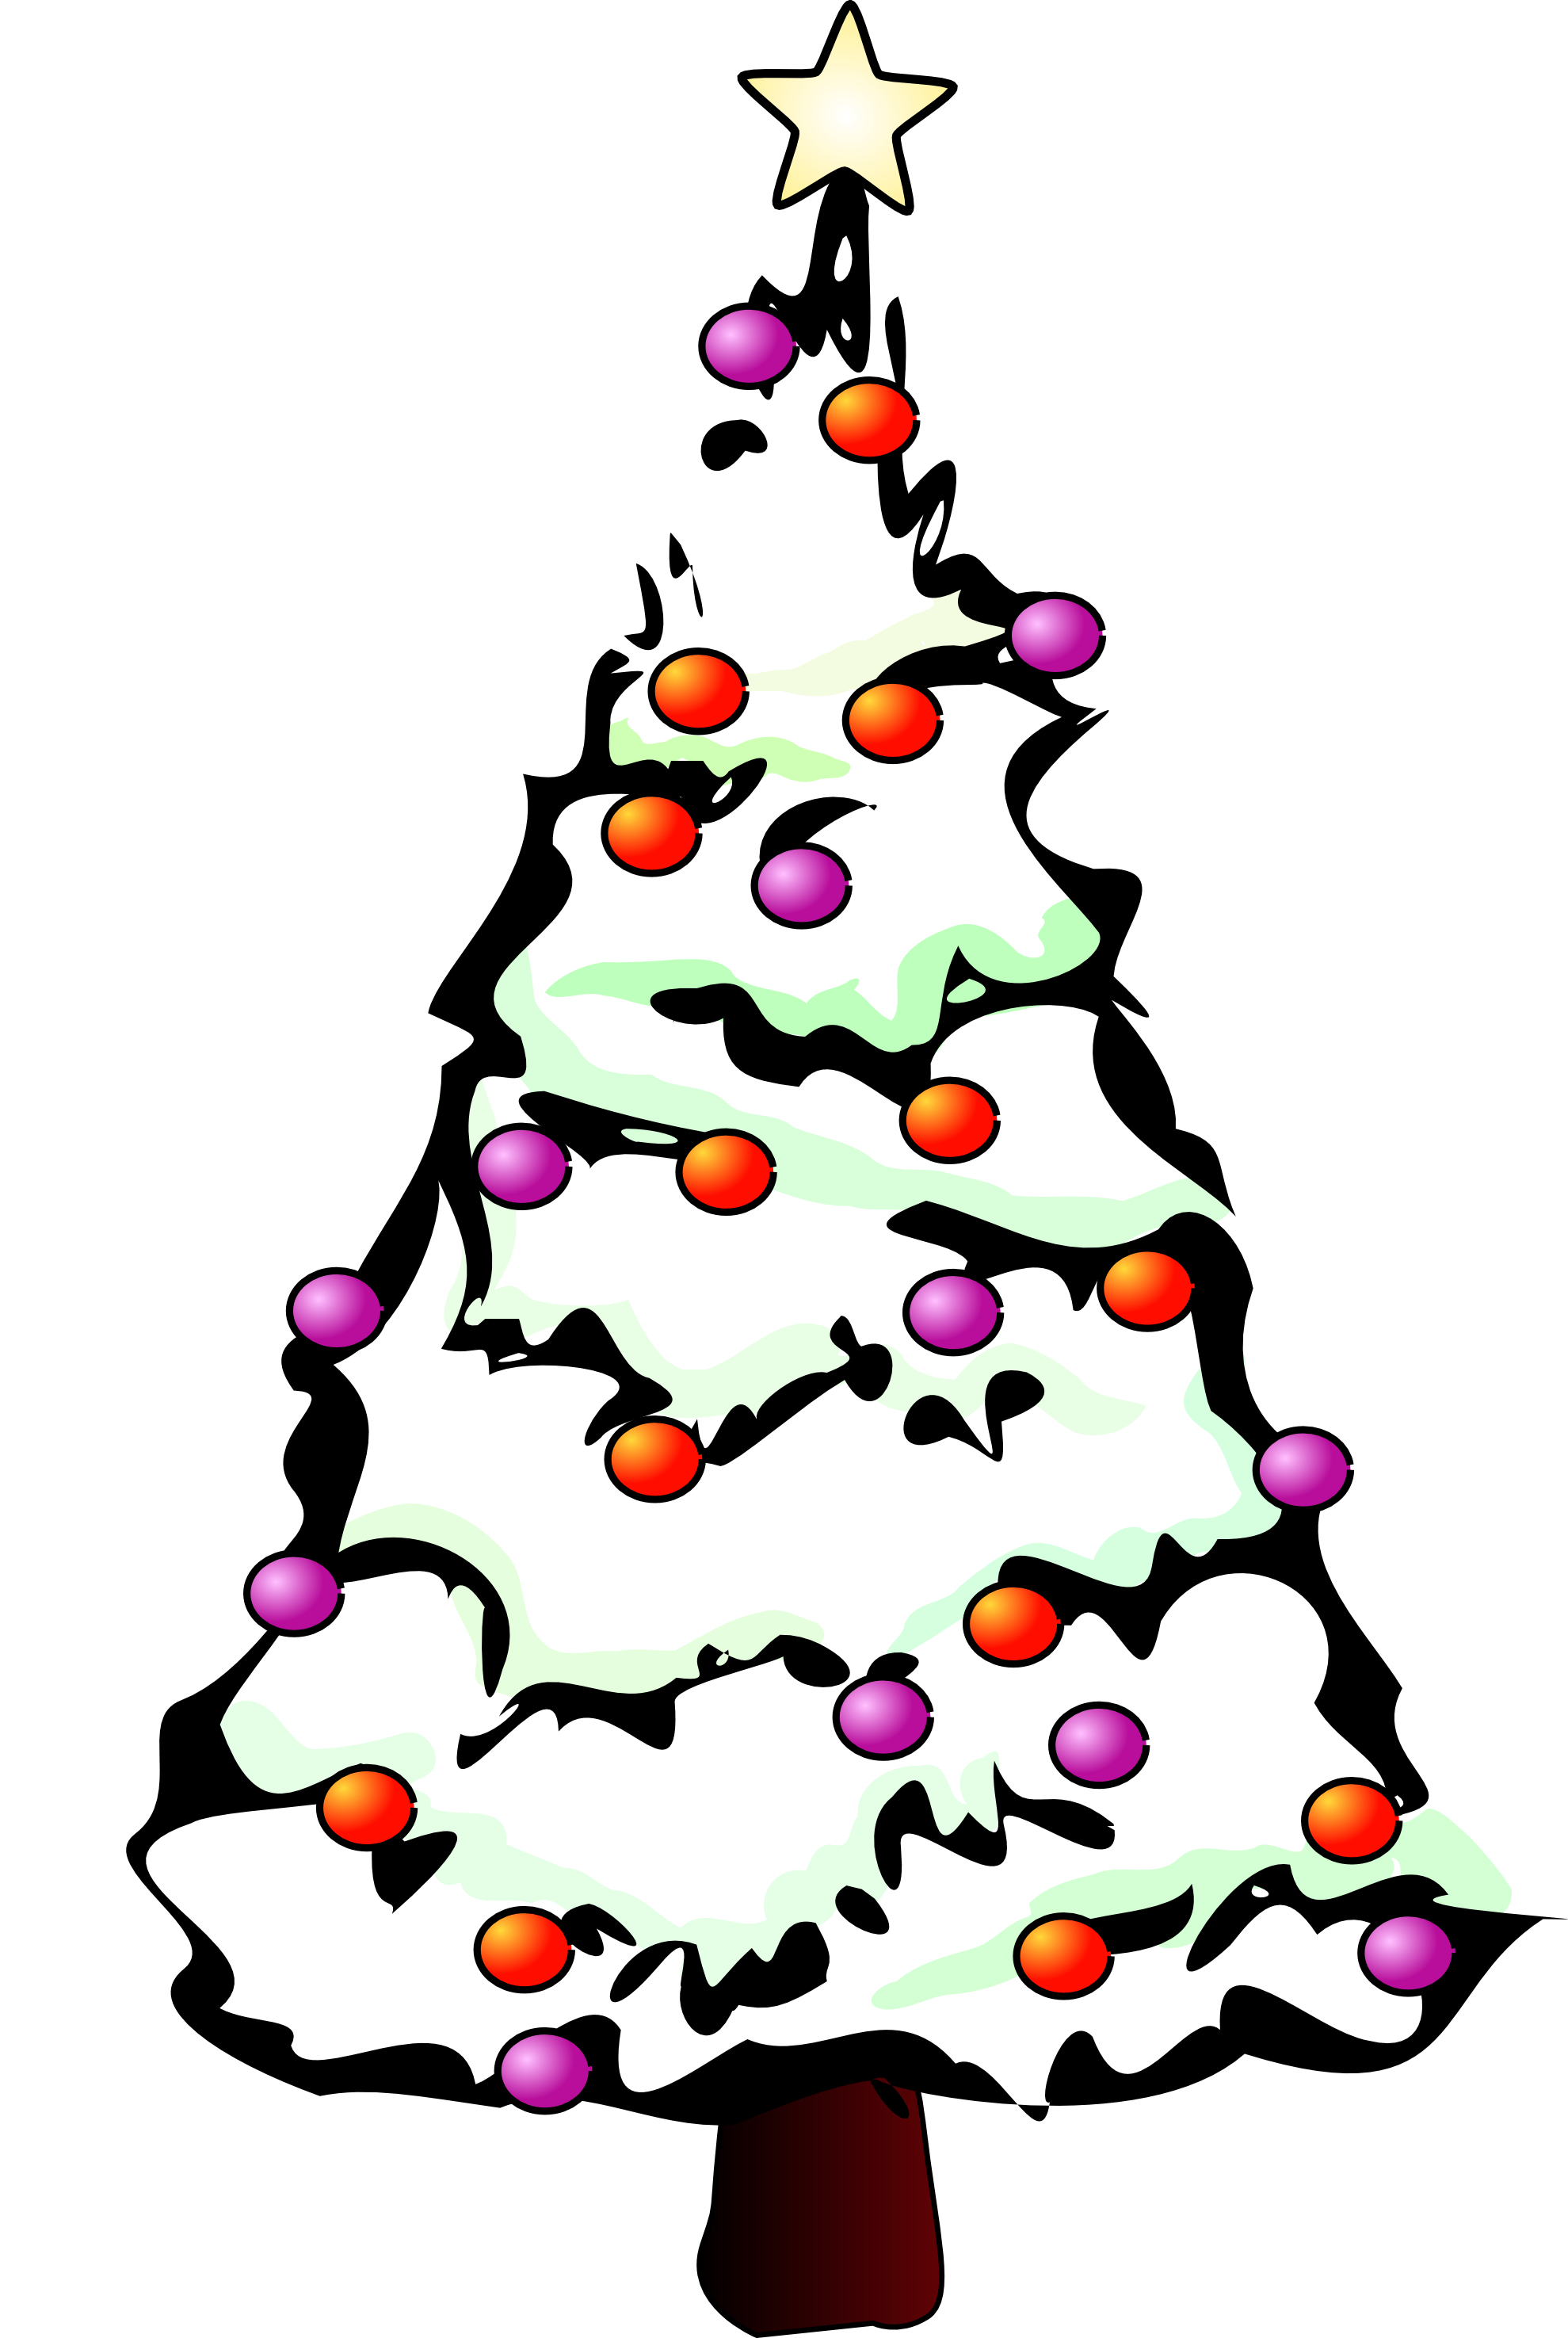 Snow Christmas Tree Clipart Black And White.